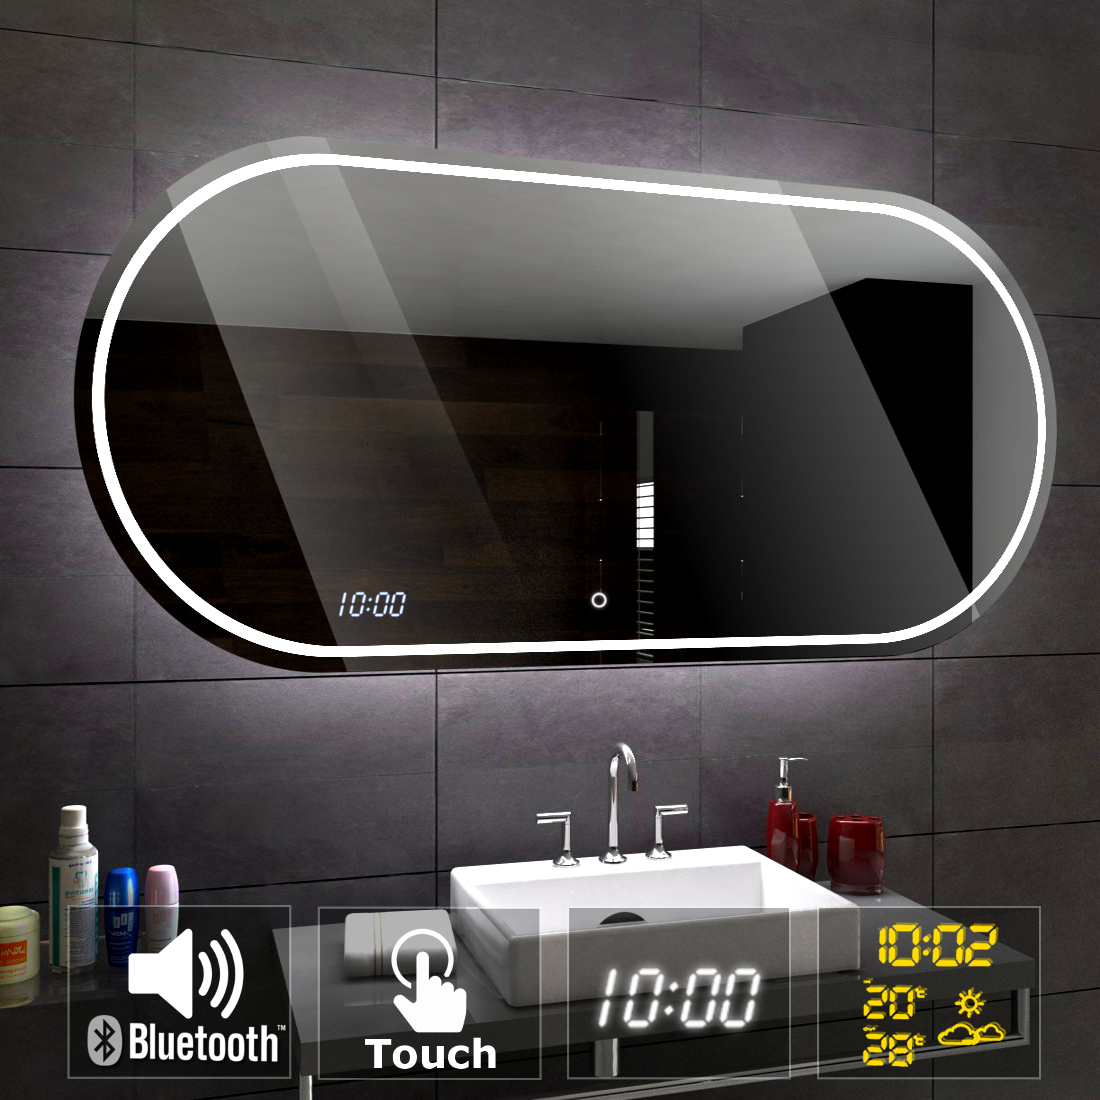 palermo clair del miroir salle de bain bluetooth touche. Black Bedroom Furniture Sets. Home Design Ideas